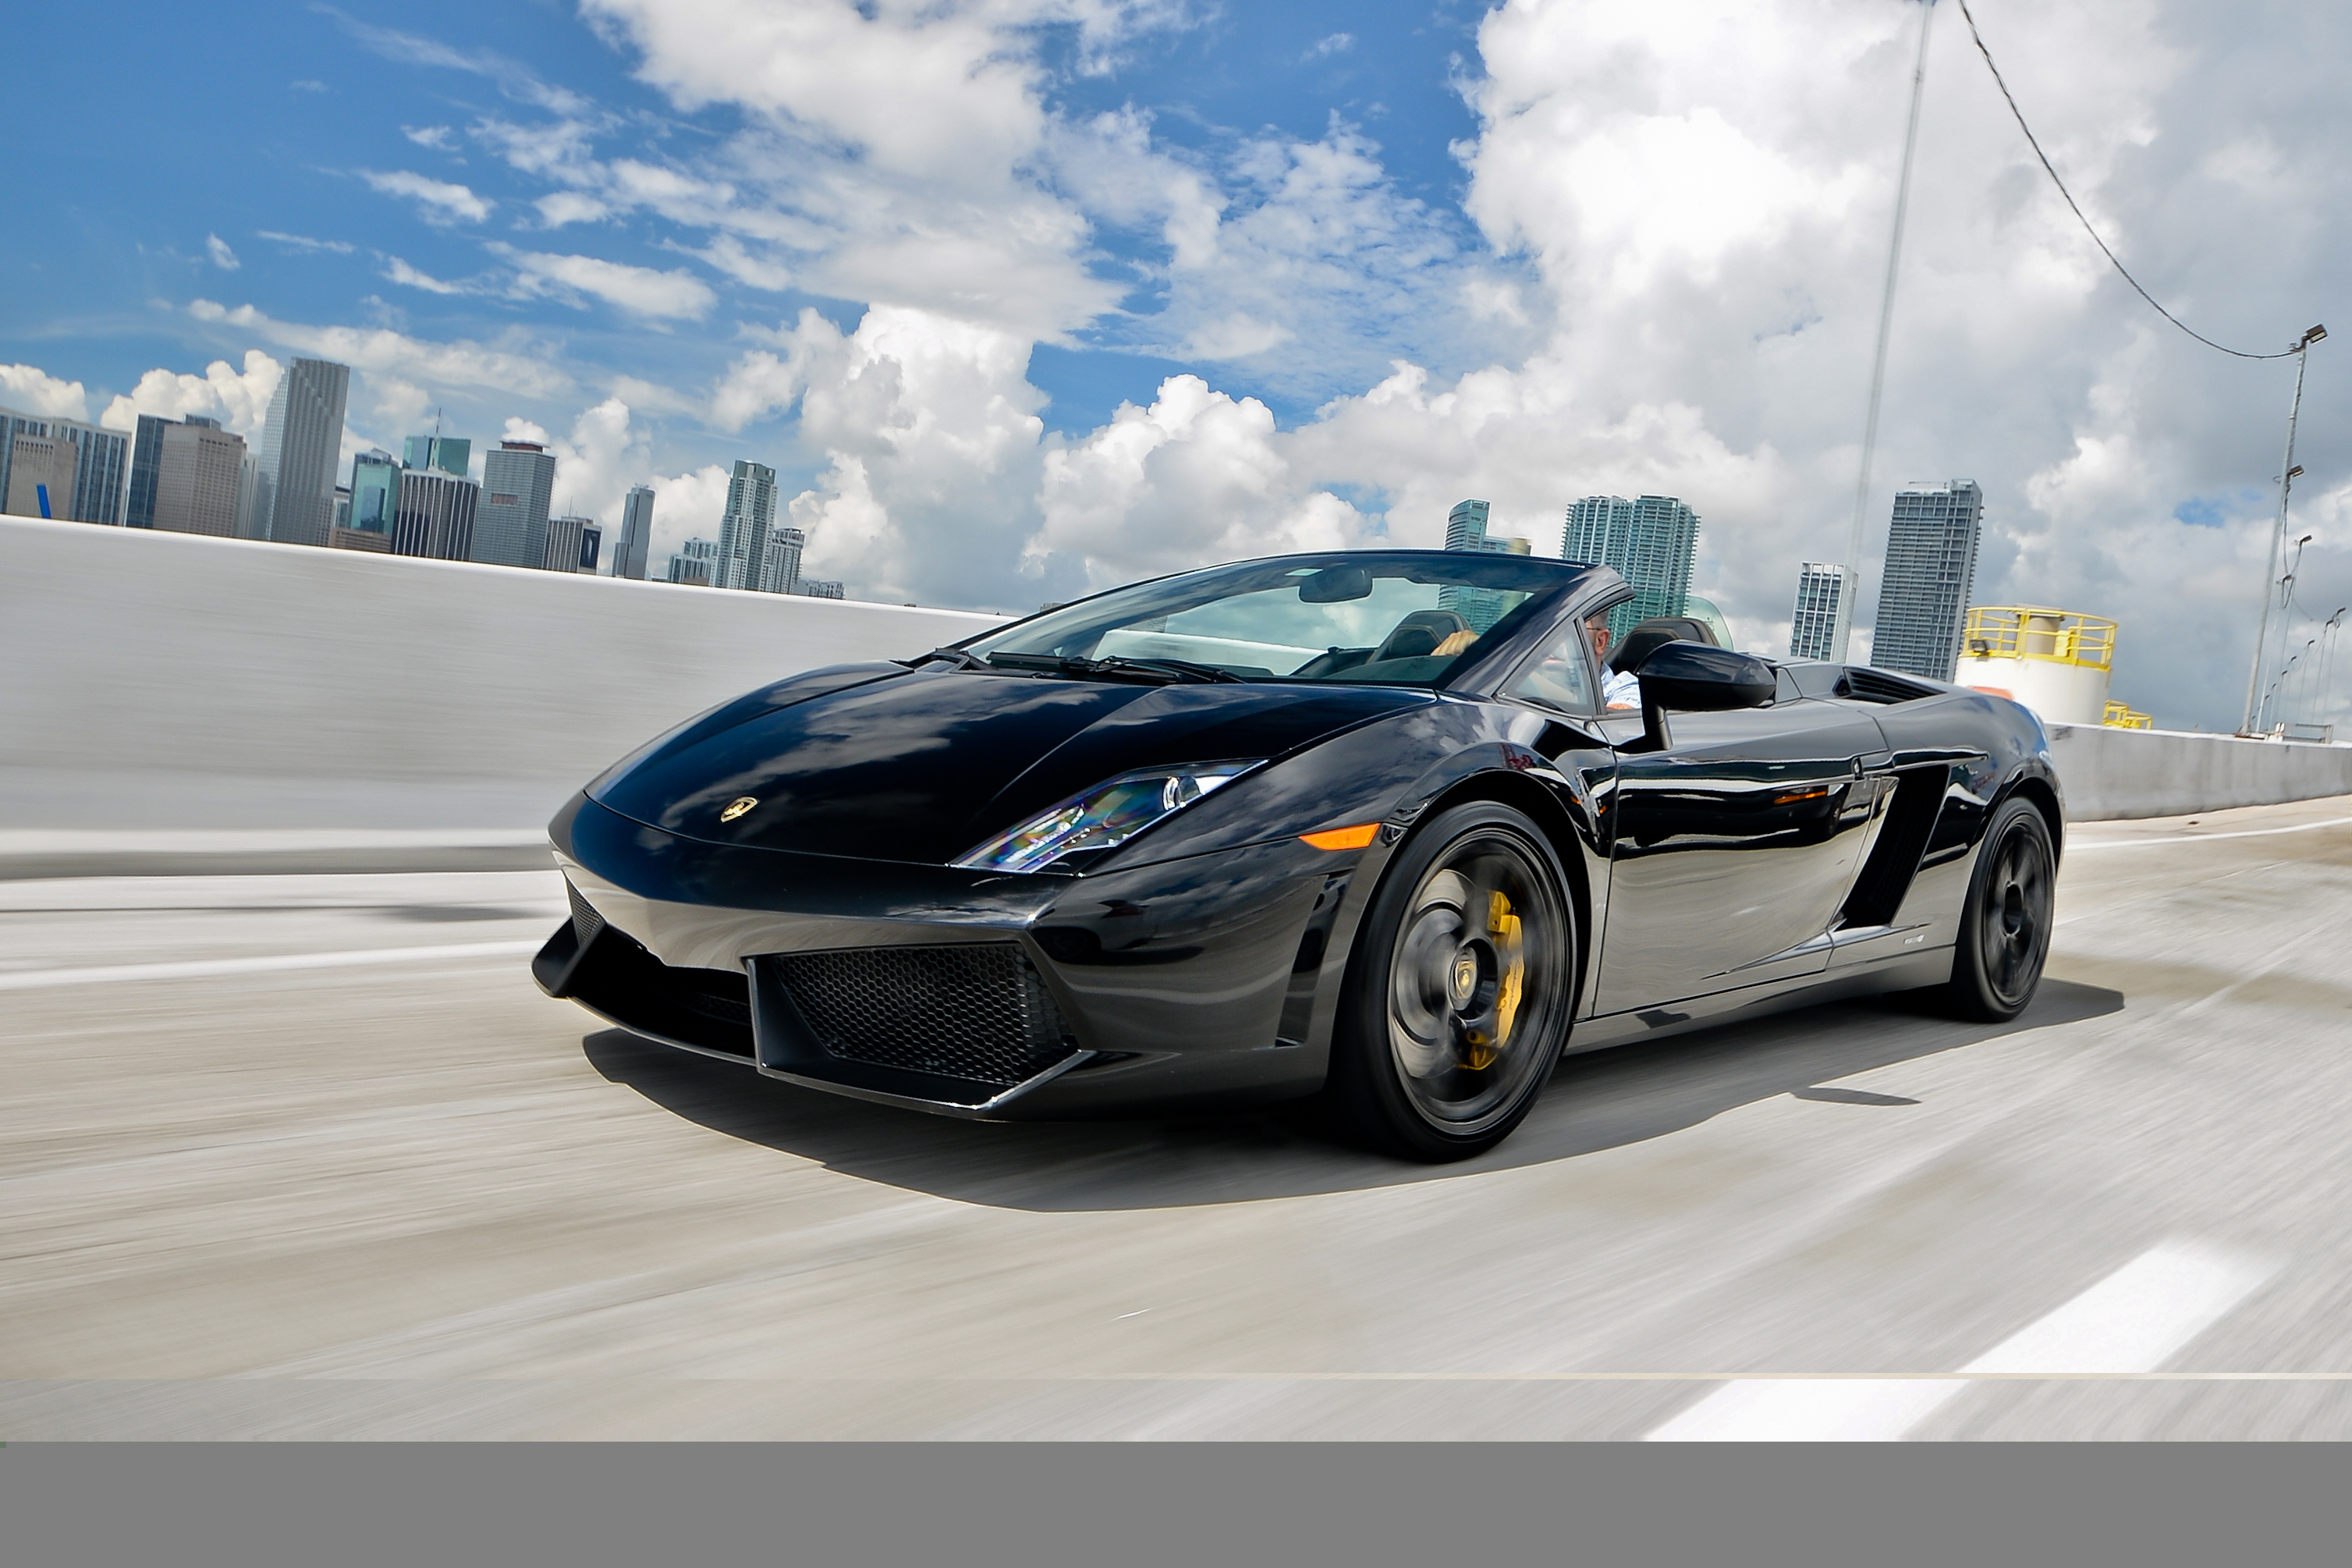 new lamborghini roadster youtube watch in aventador a the miami all mph rent club